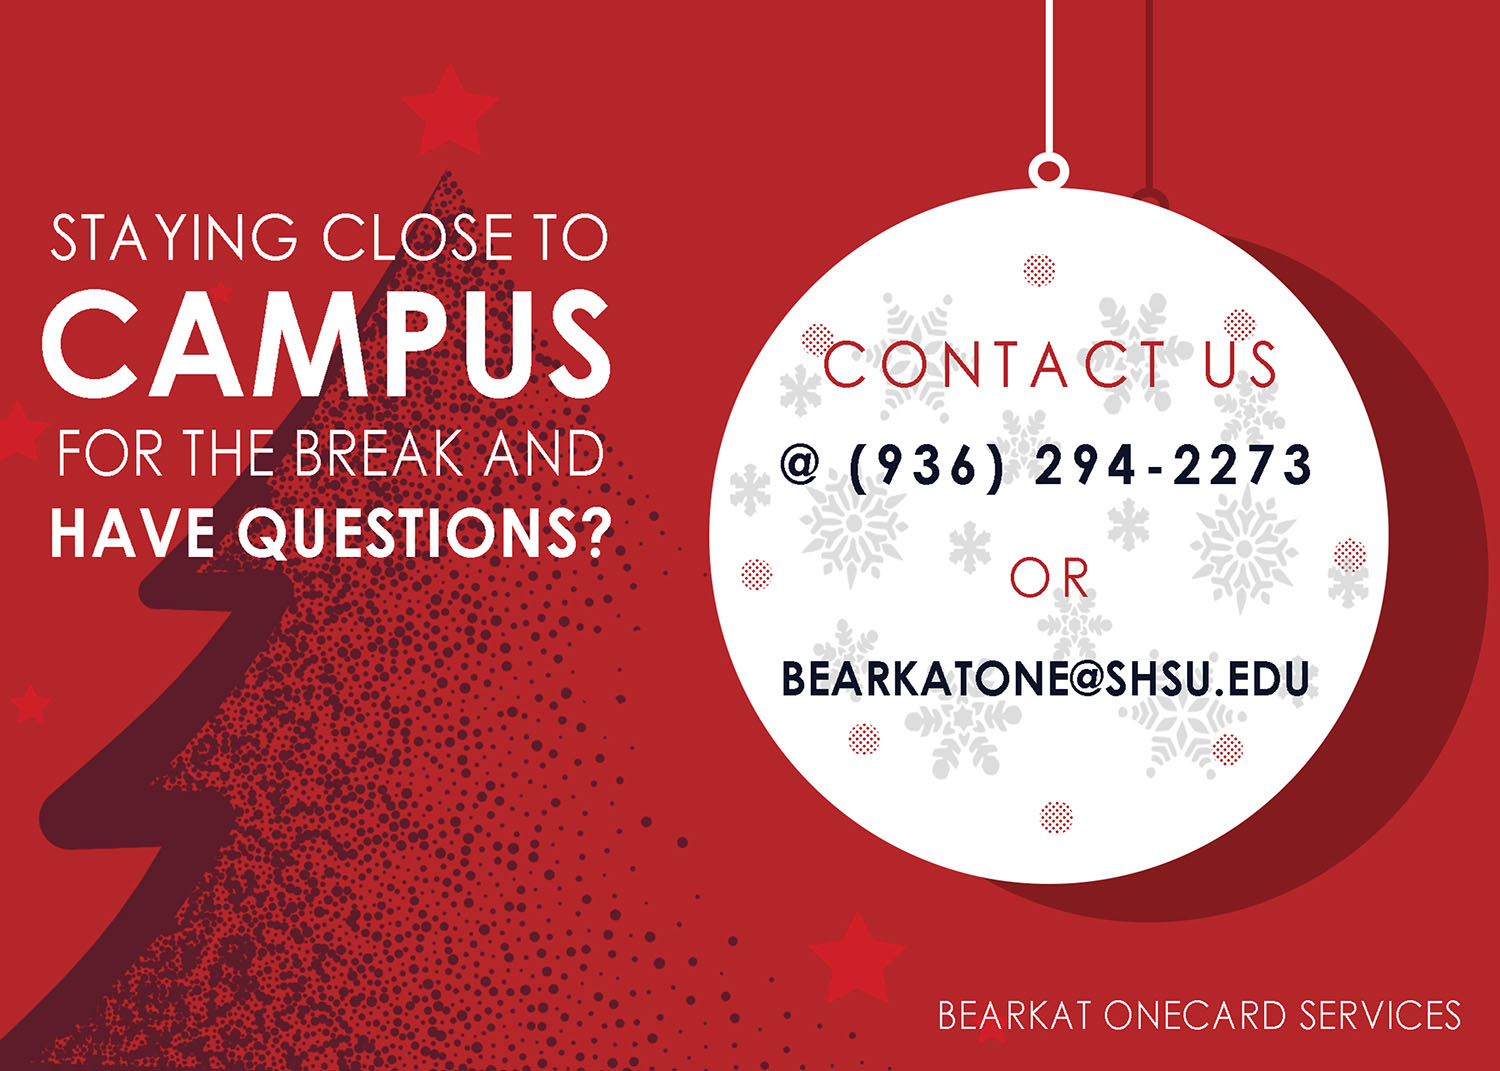 Staying Close to Campus: Questions please call (936)-294-2273